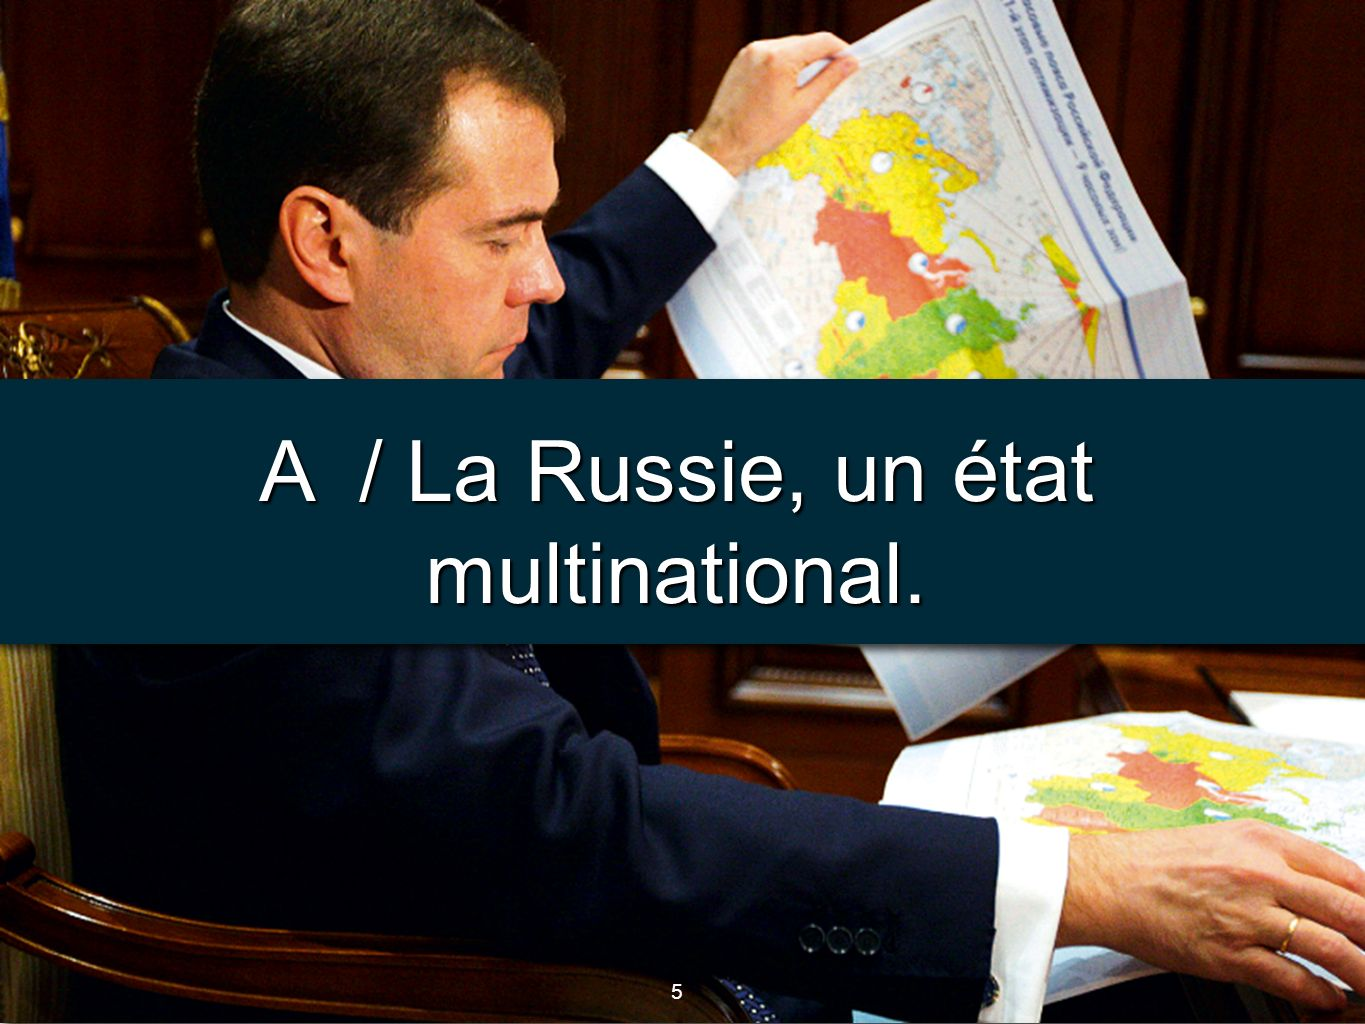 A / La Russie, un état multinational.